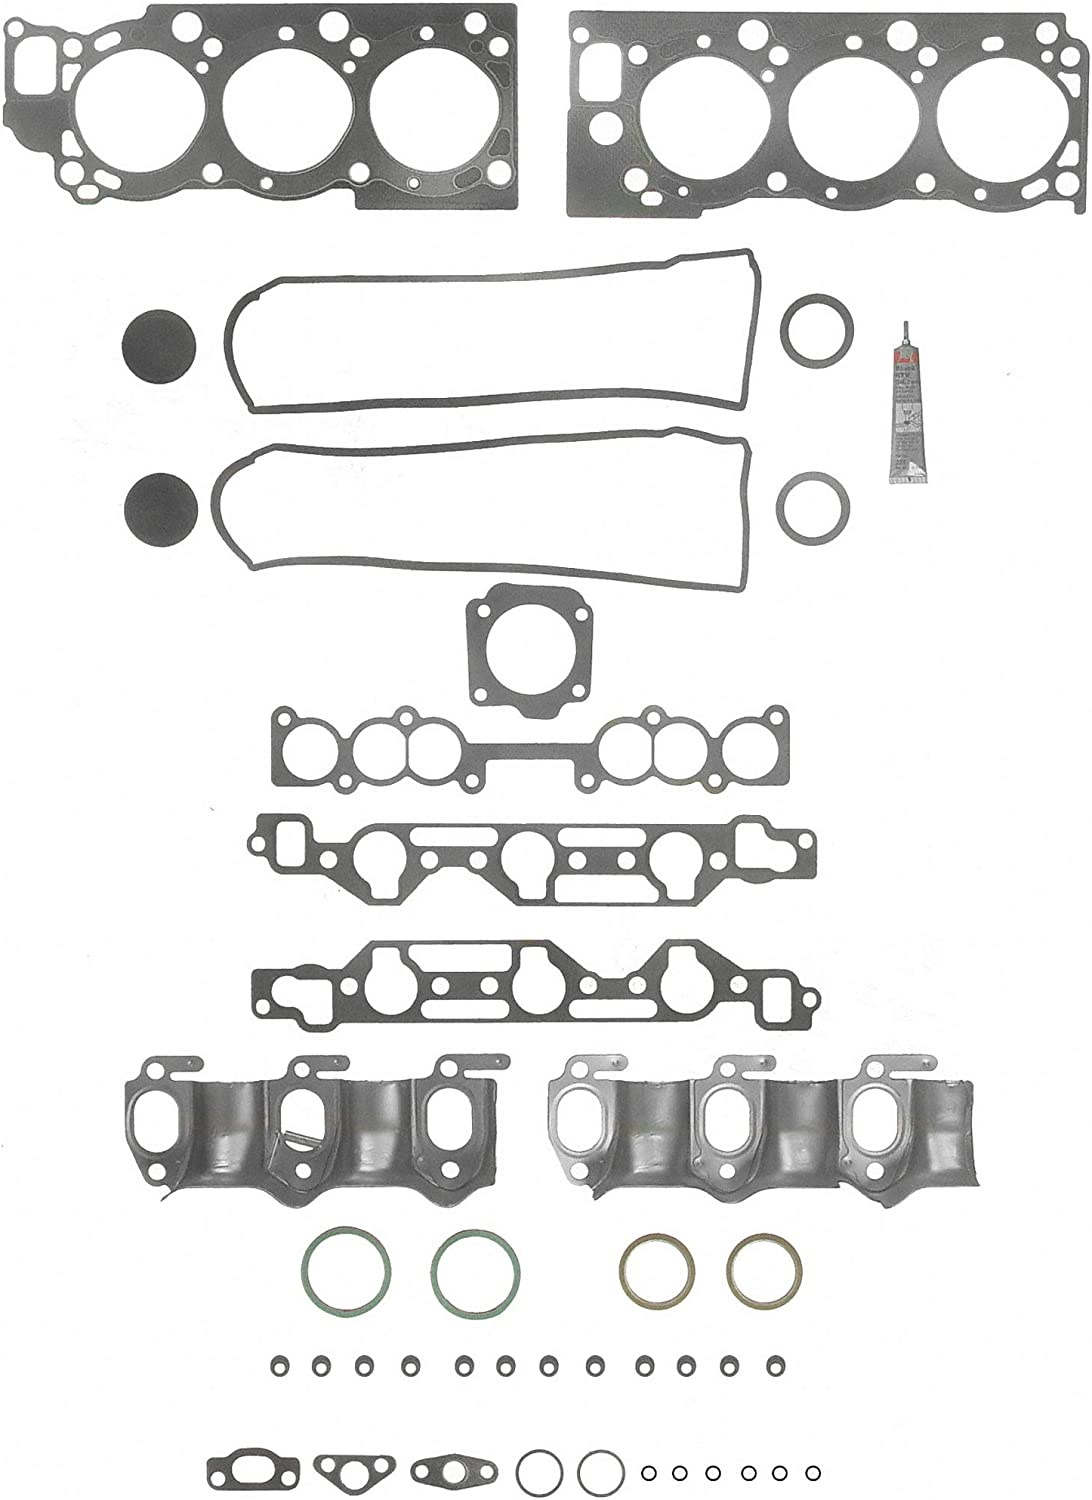 FEL-PRO HS 9728 PT-1 Max 64% OFF Set Directly managed store Gasket Head